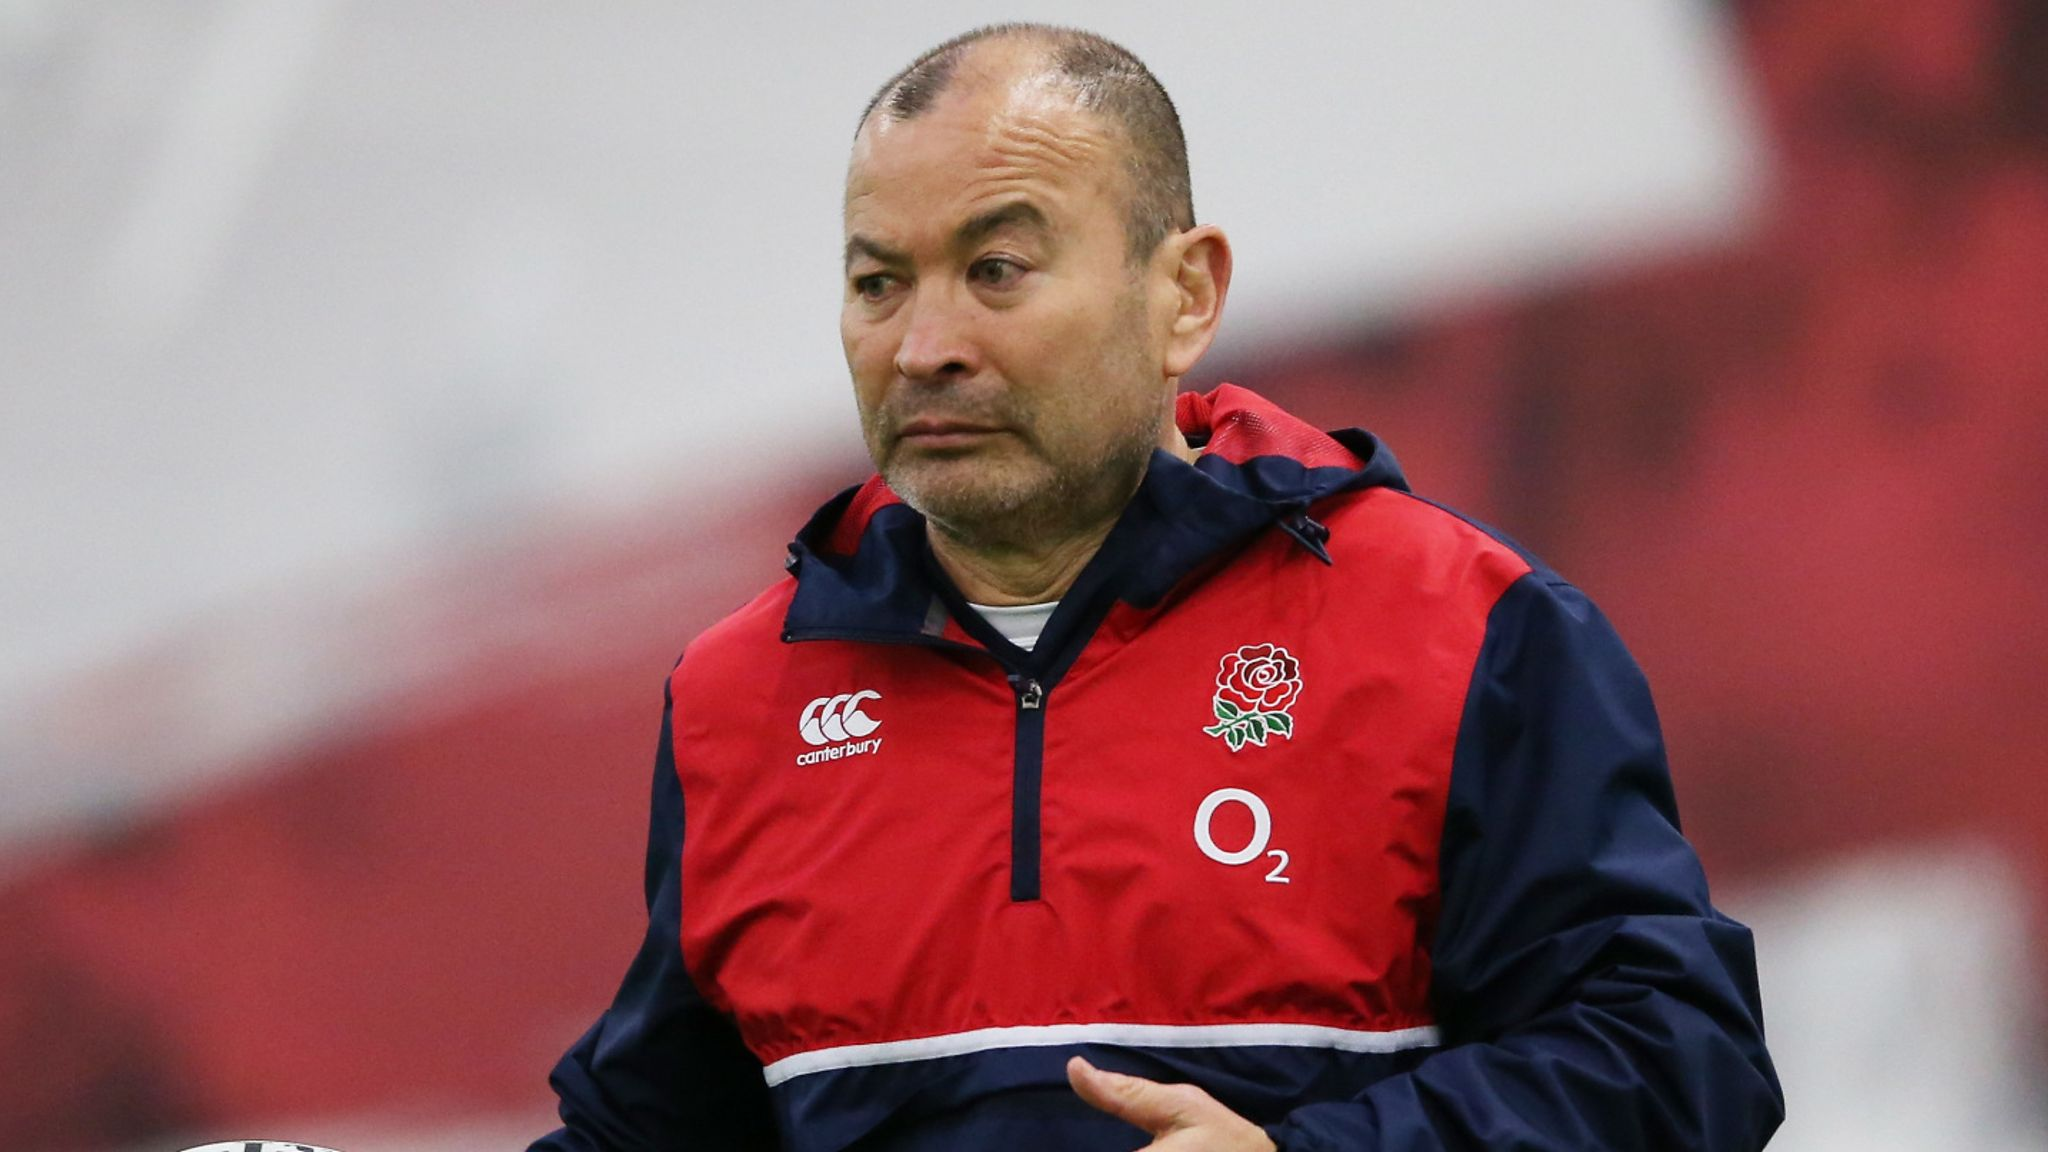 Eddie Jones says England World Cup squad should have been refreshed